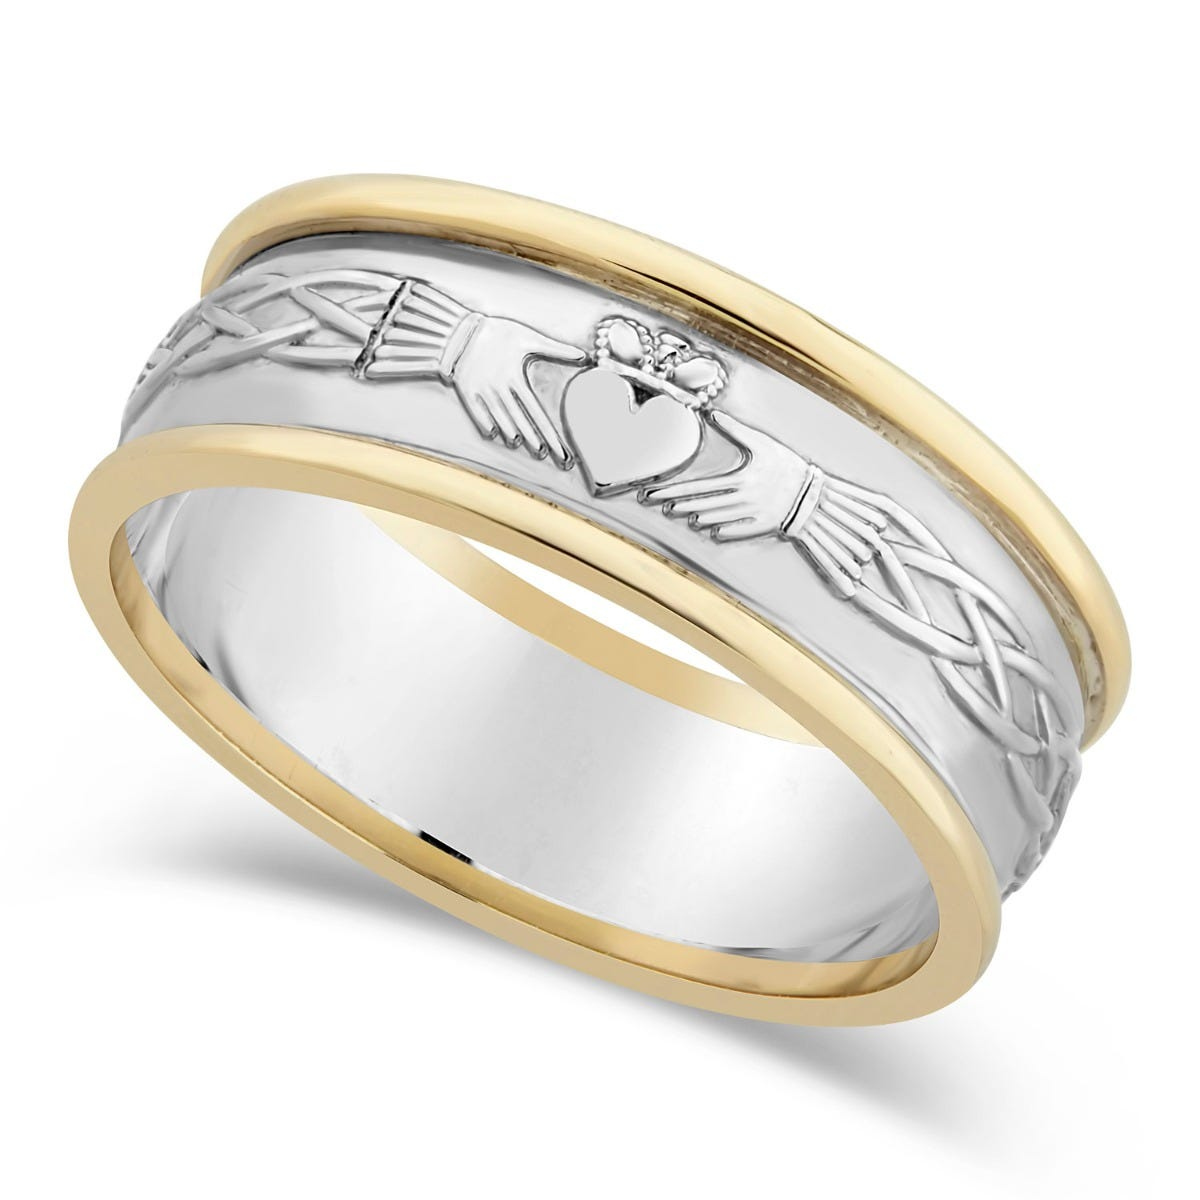 Sterling Silver and Gold Claddagh Mens Wedding Ring